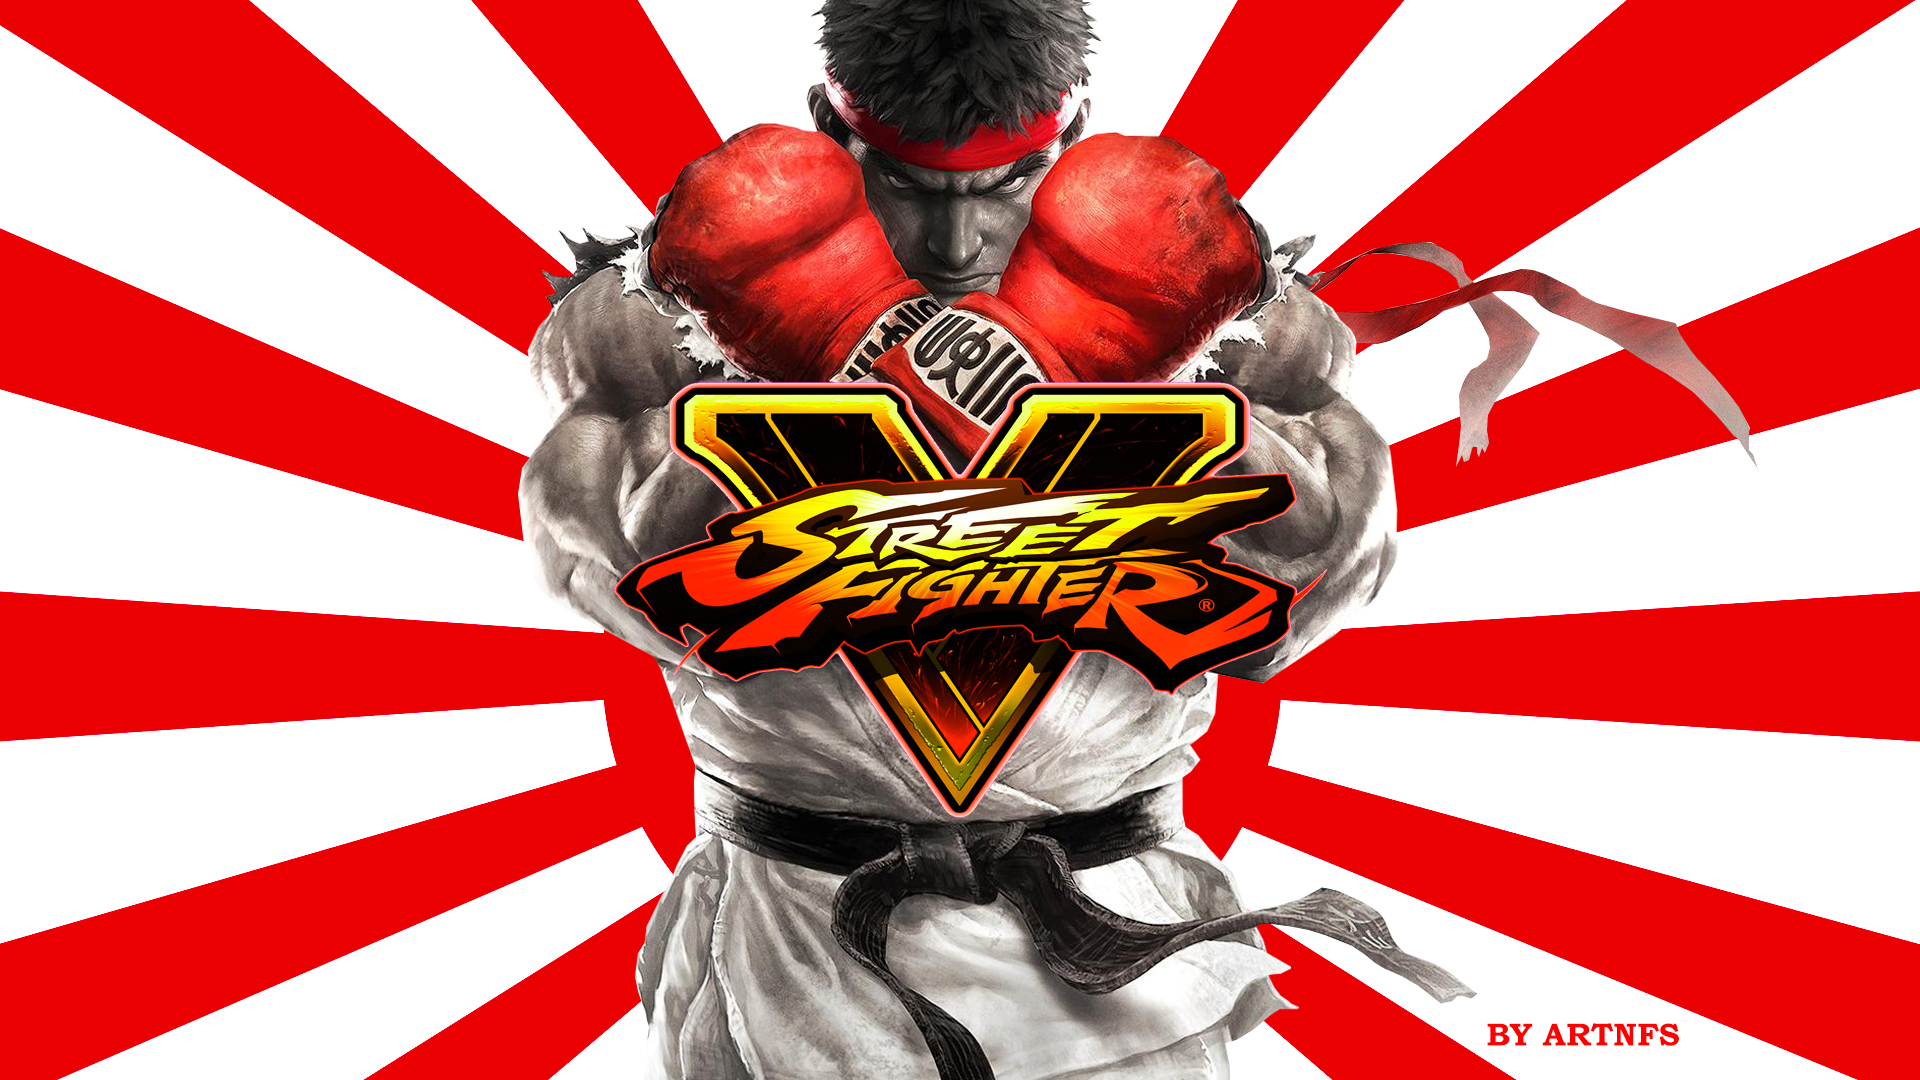 Street Fighter 5 Wallpaper